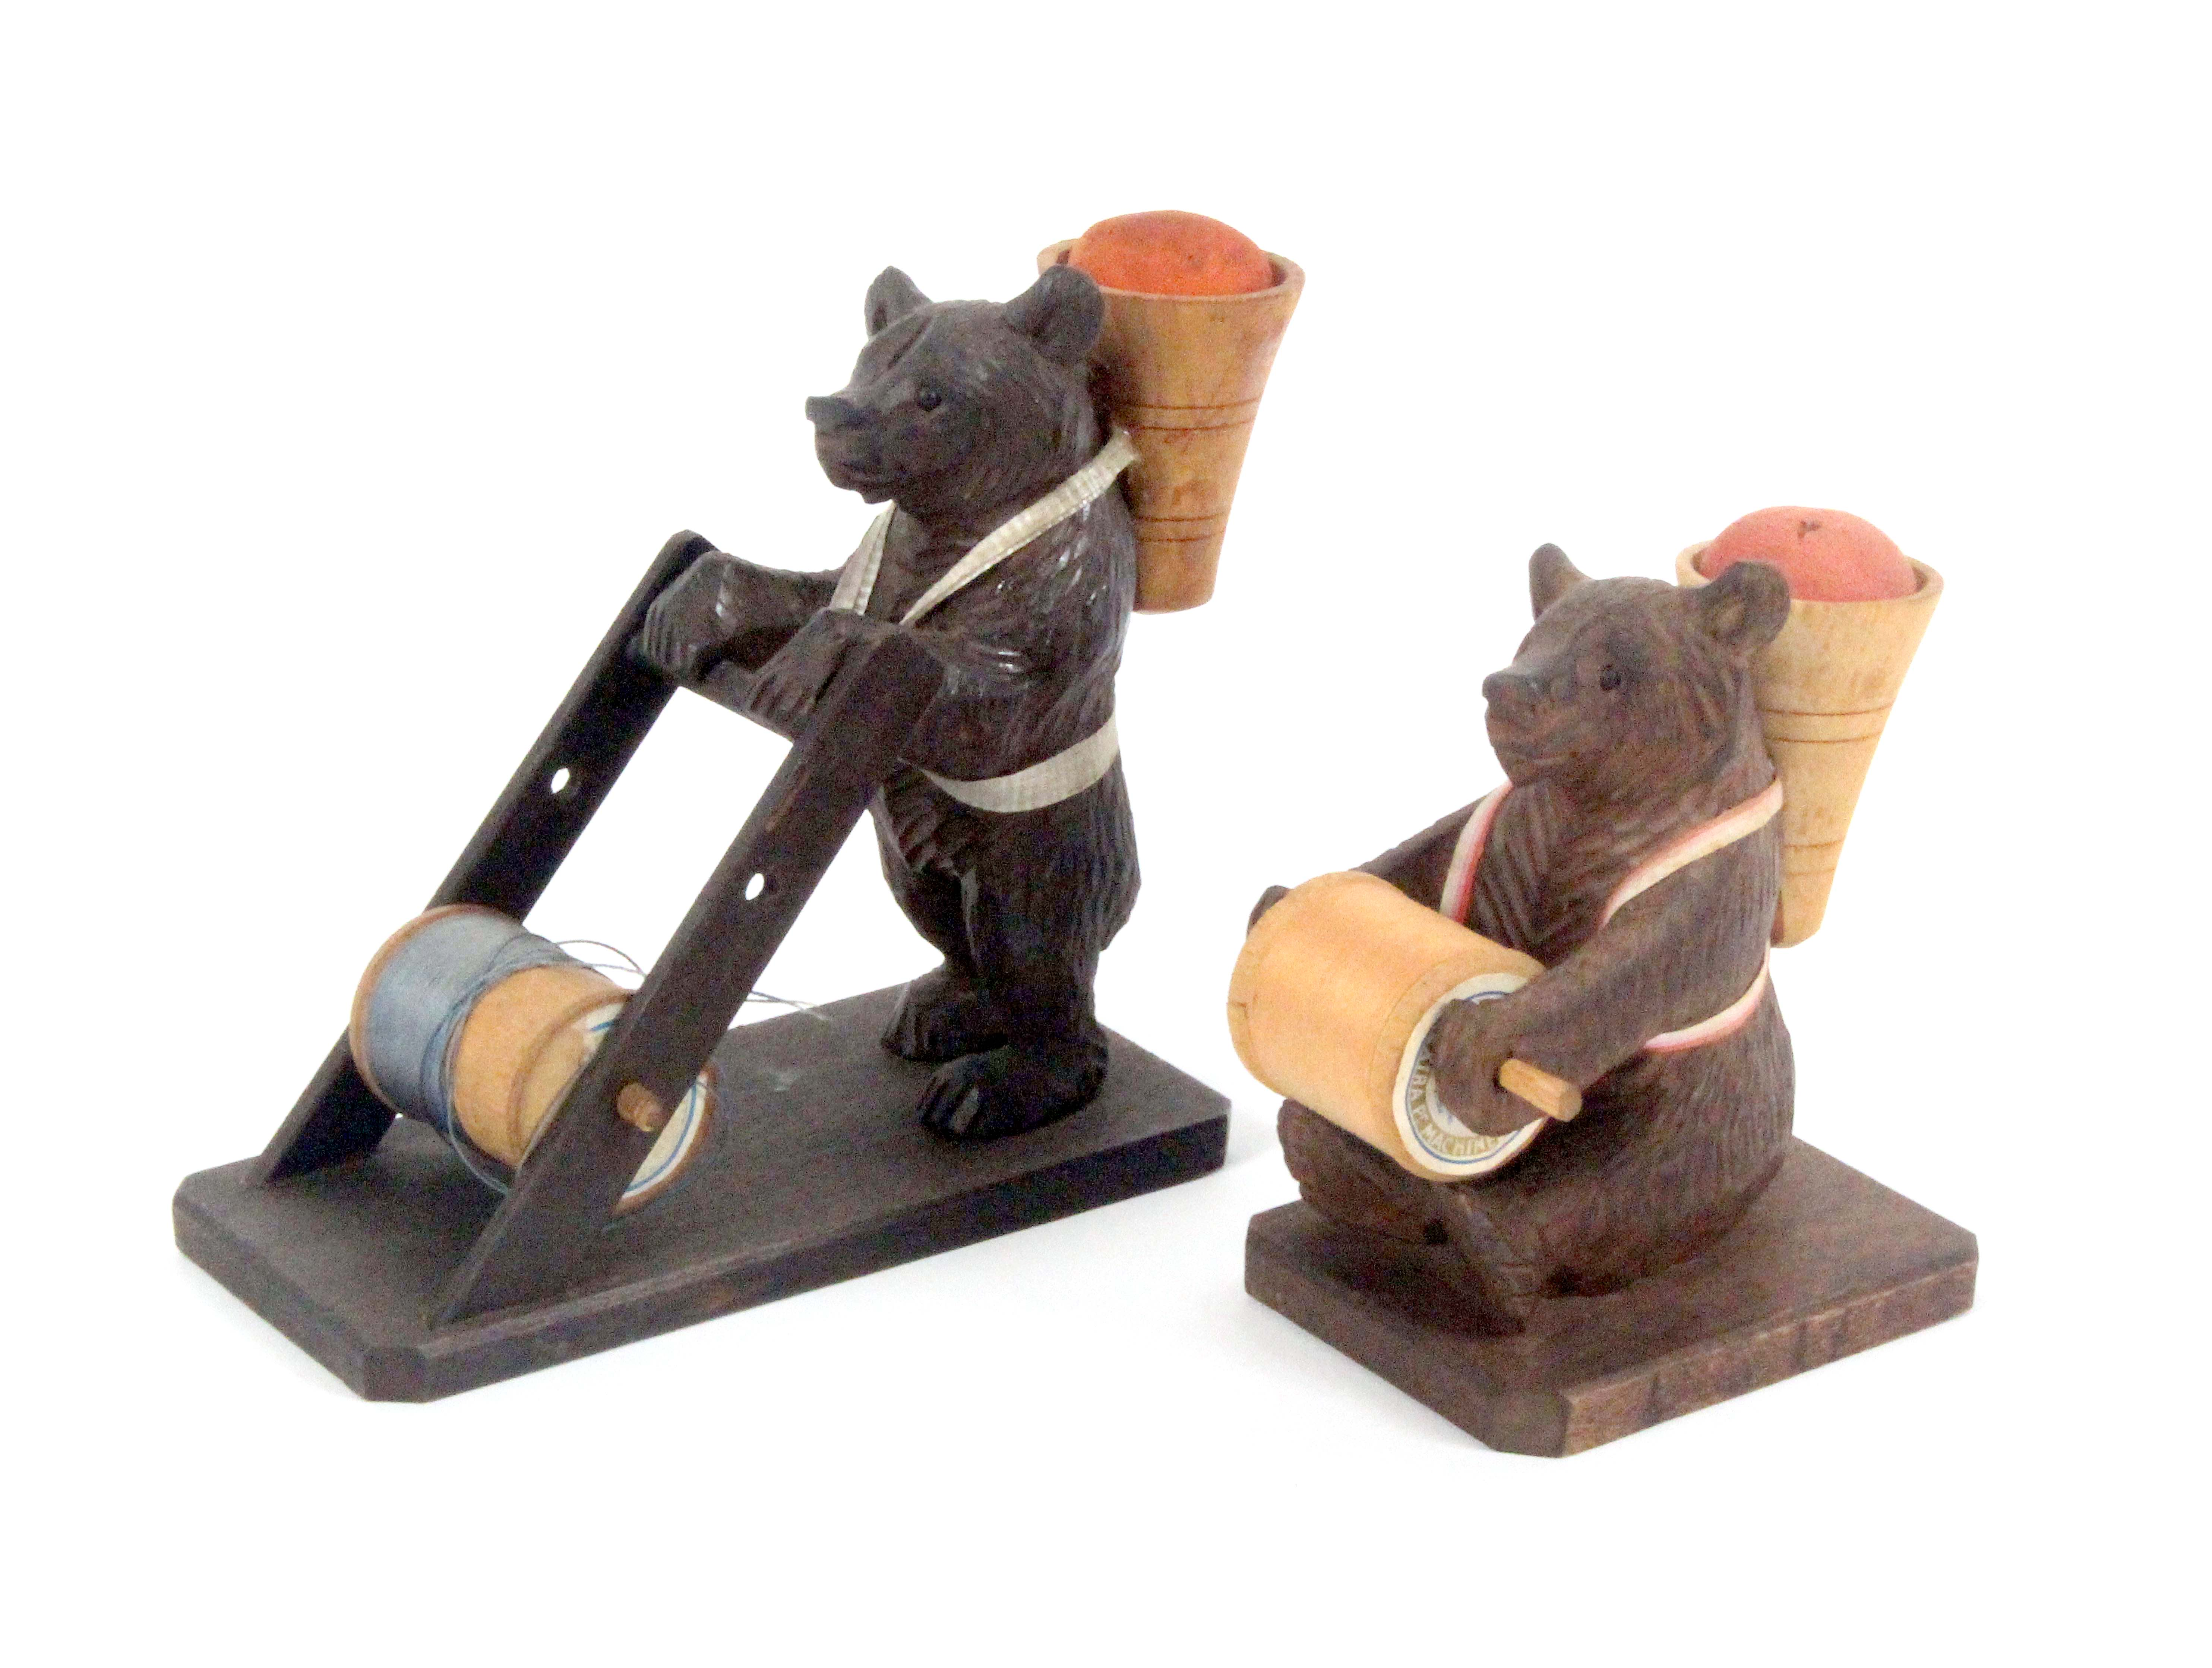 Two Black Forest carved wood bear form sewing companions, one as a standing bear with pannier form